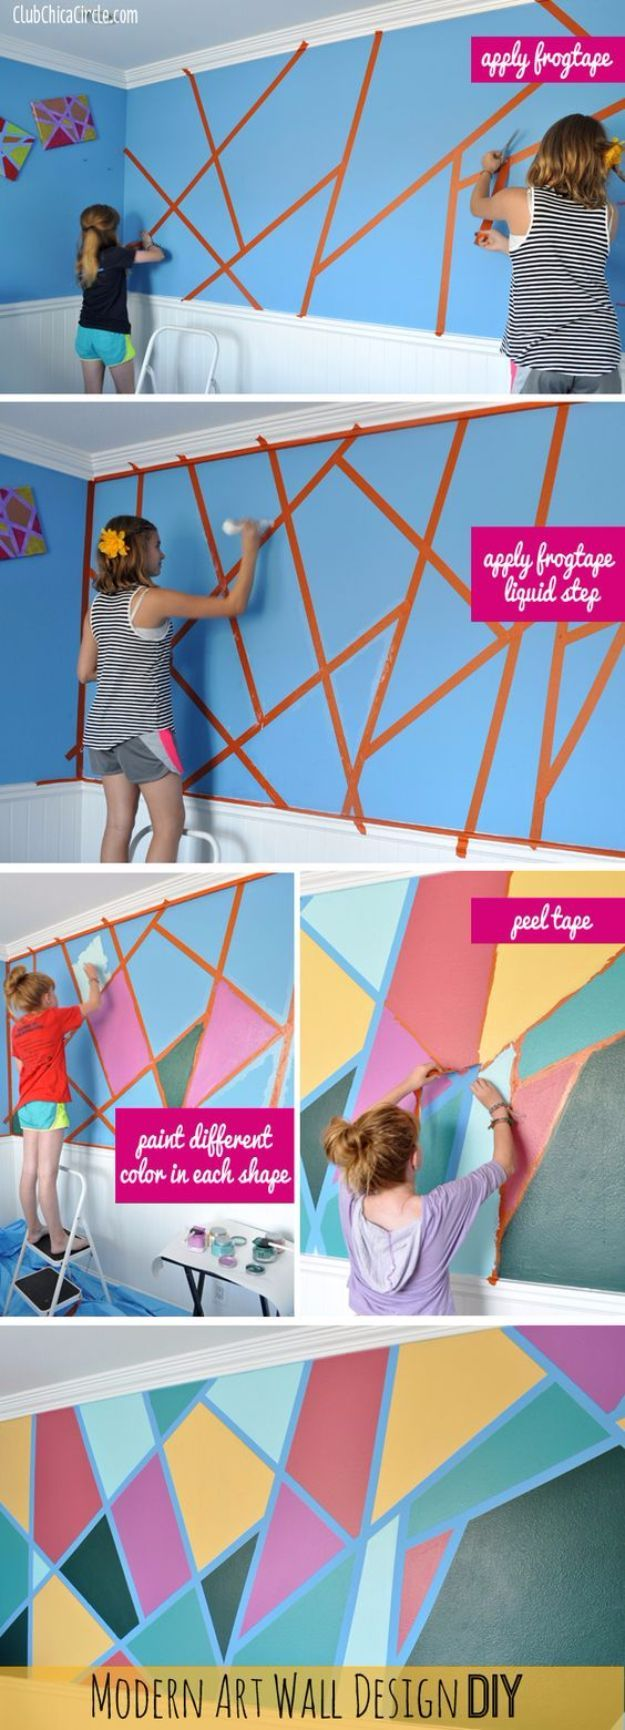 Best Ideas About Creative Wall Painting On Pinterest Wall - Diy bedroom painting ideas